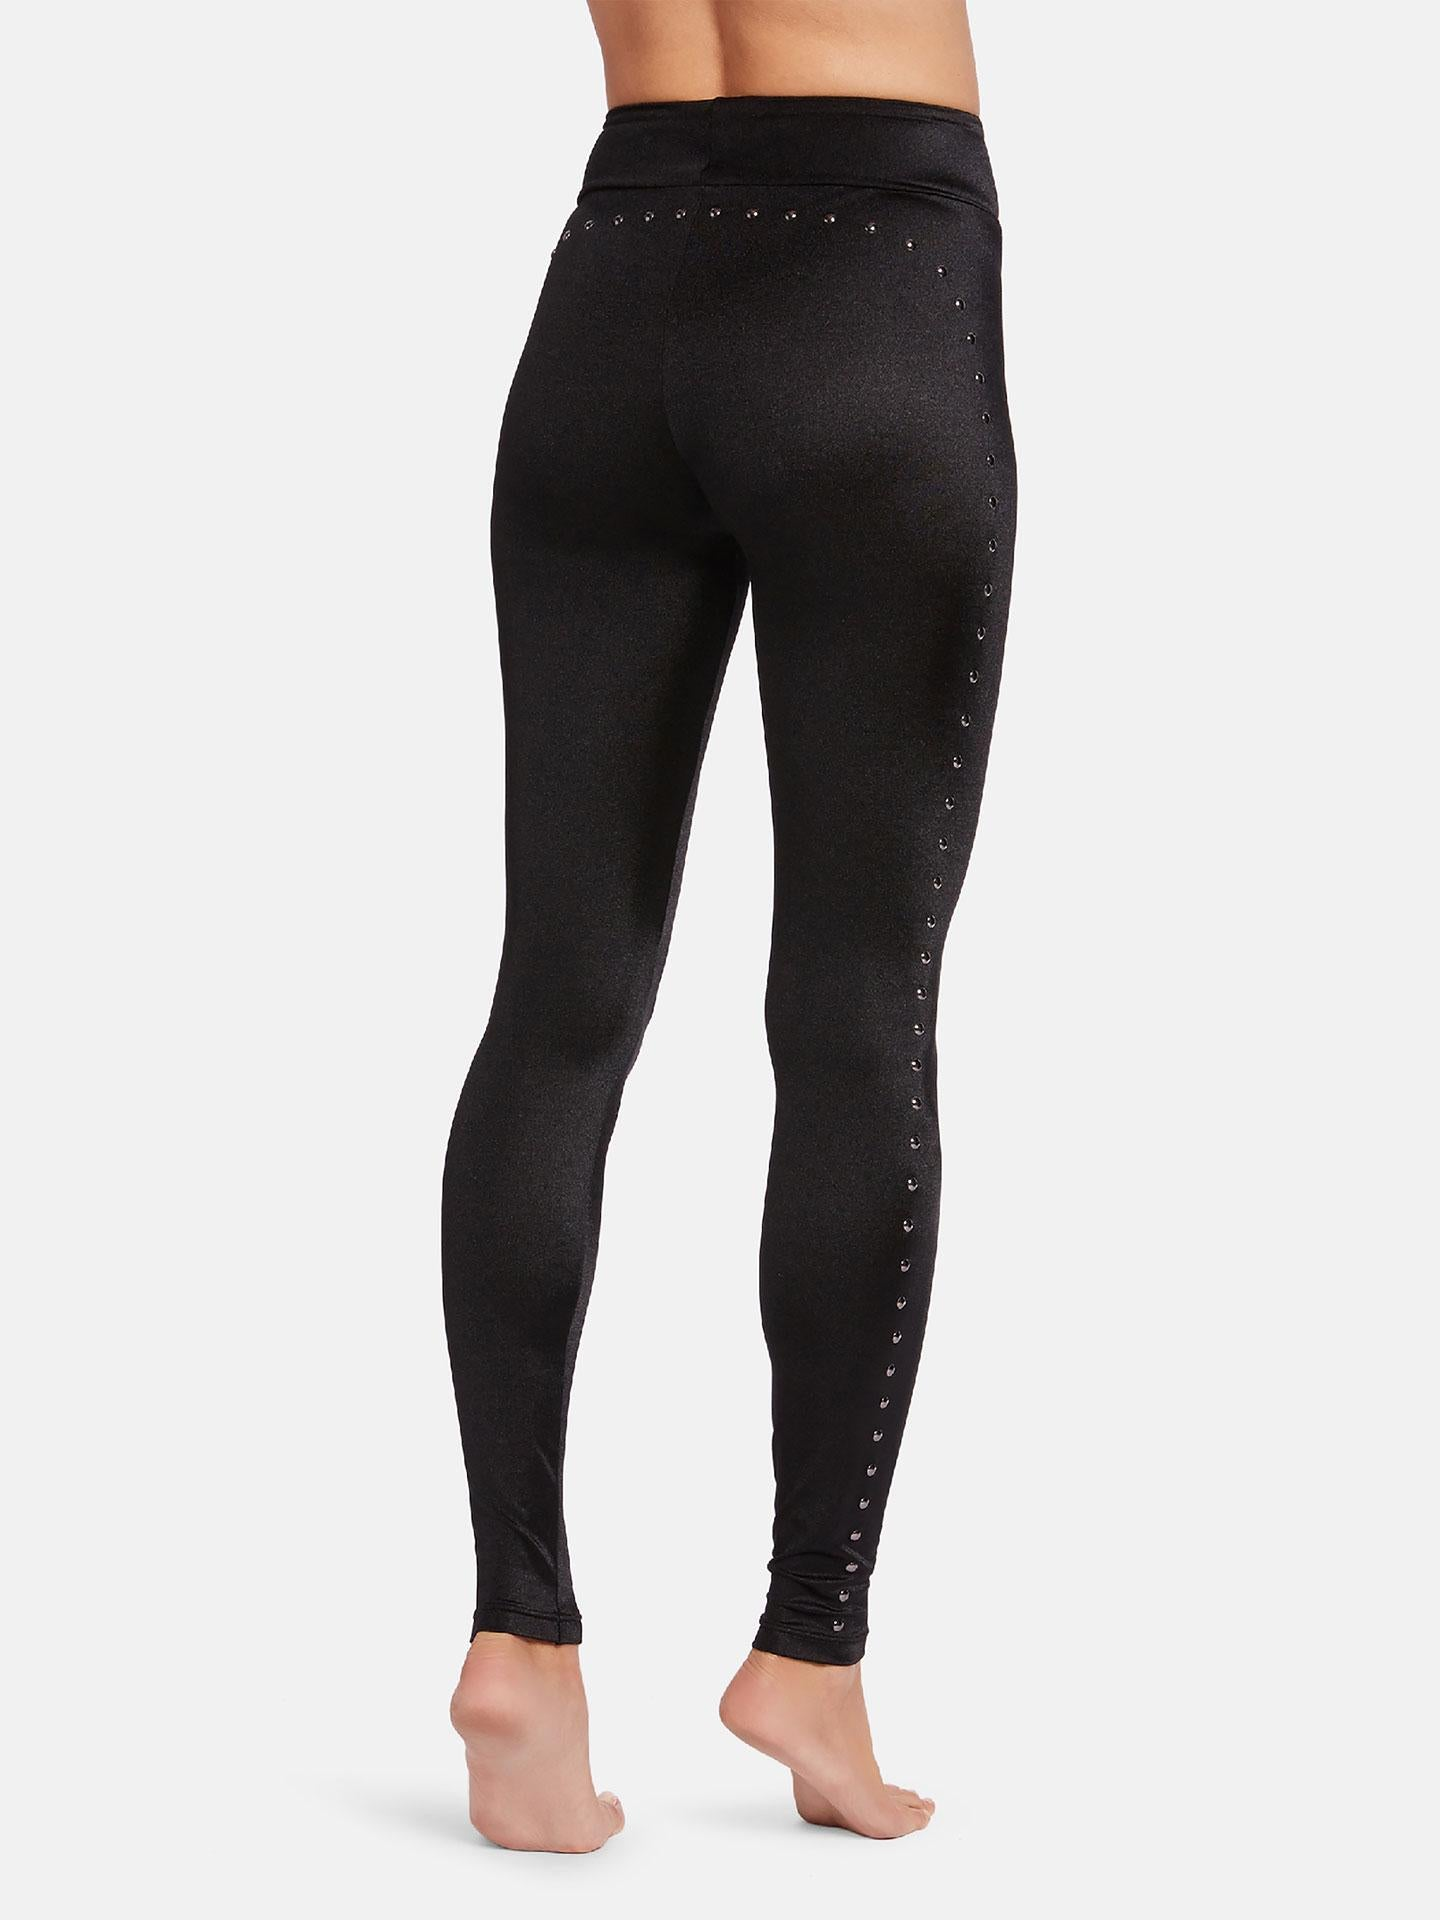 Nobilitas leggings